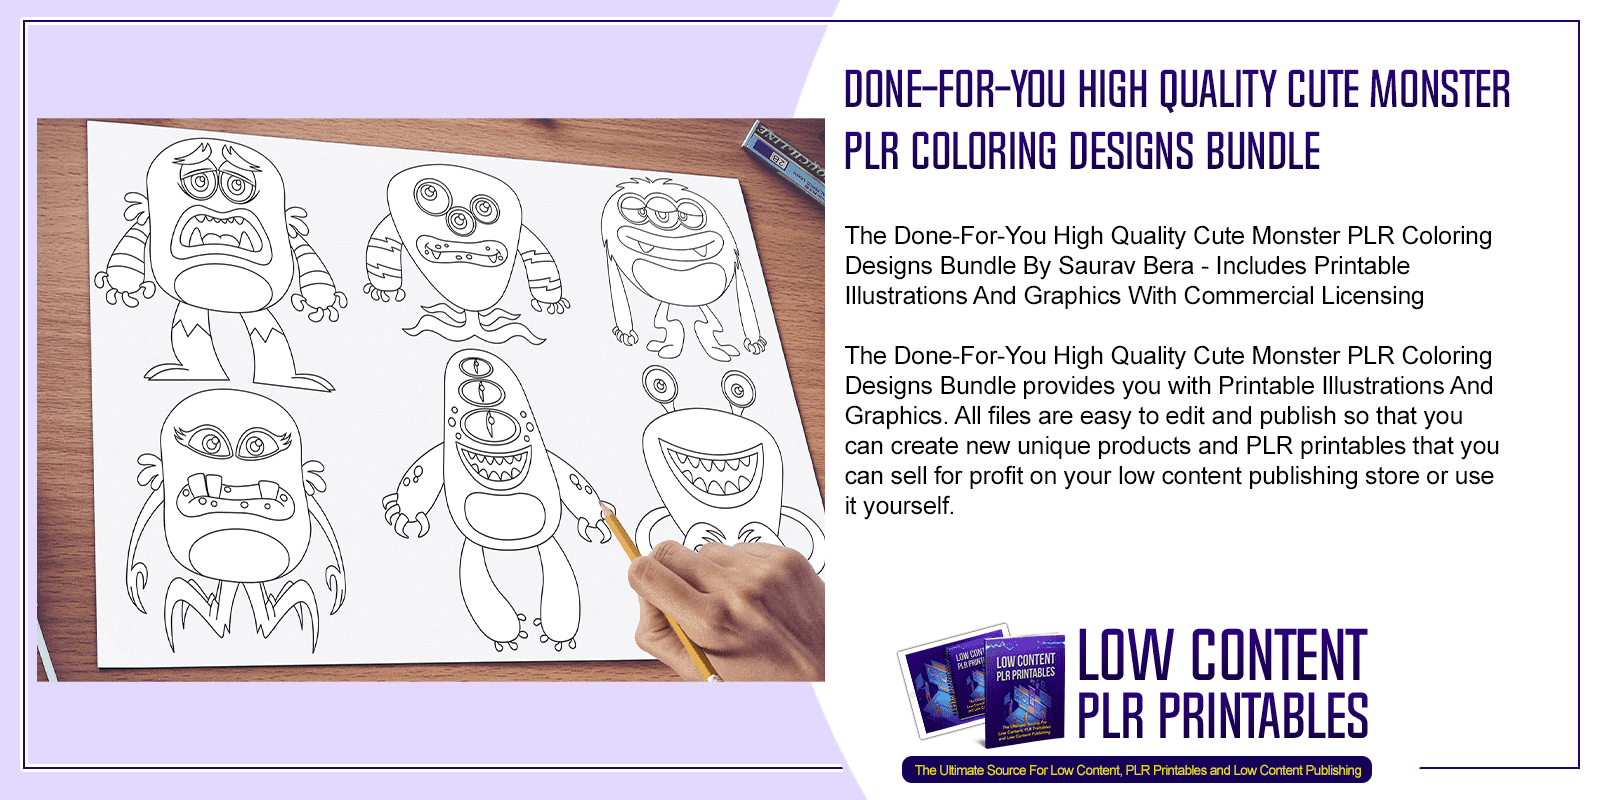 Done For You High Quality Cute Monster PLR Coloring Designs Bundle